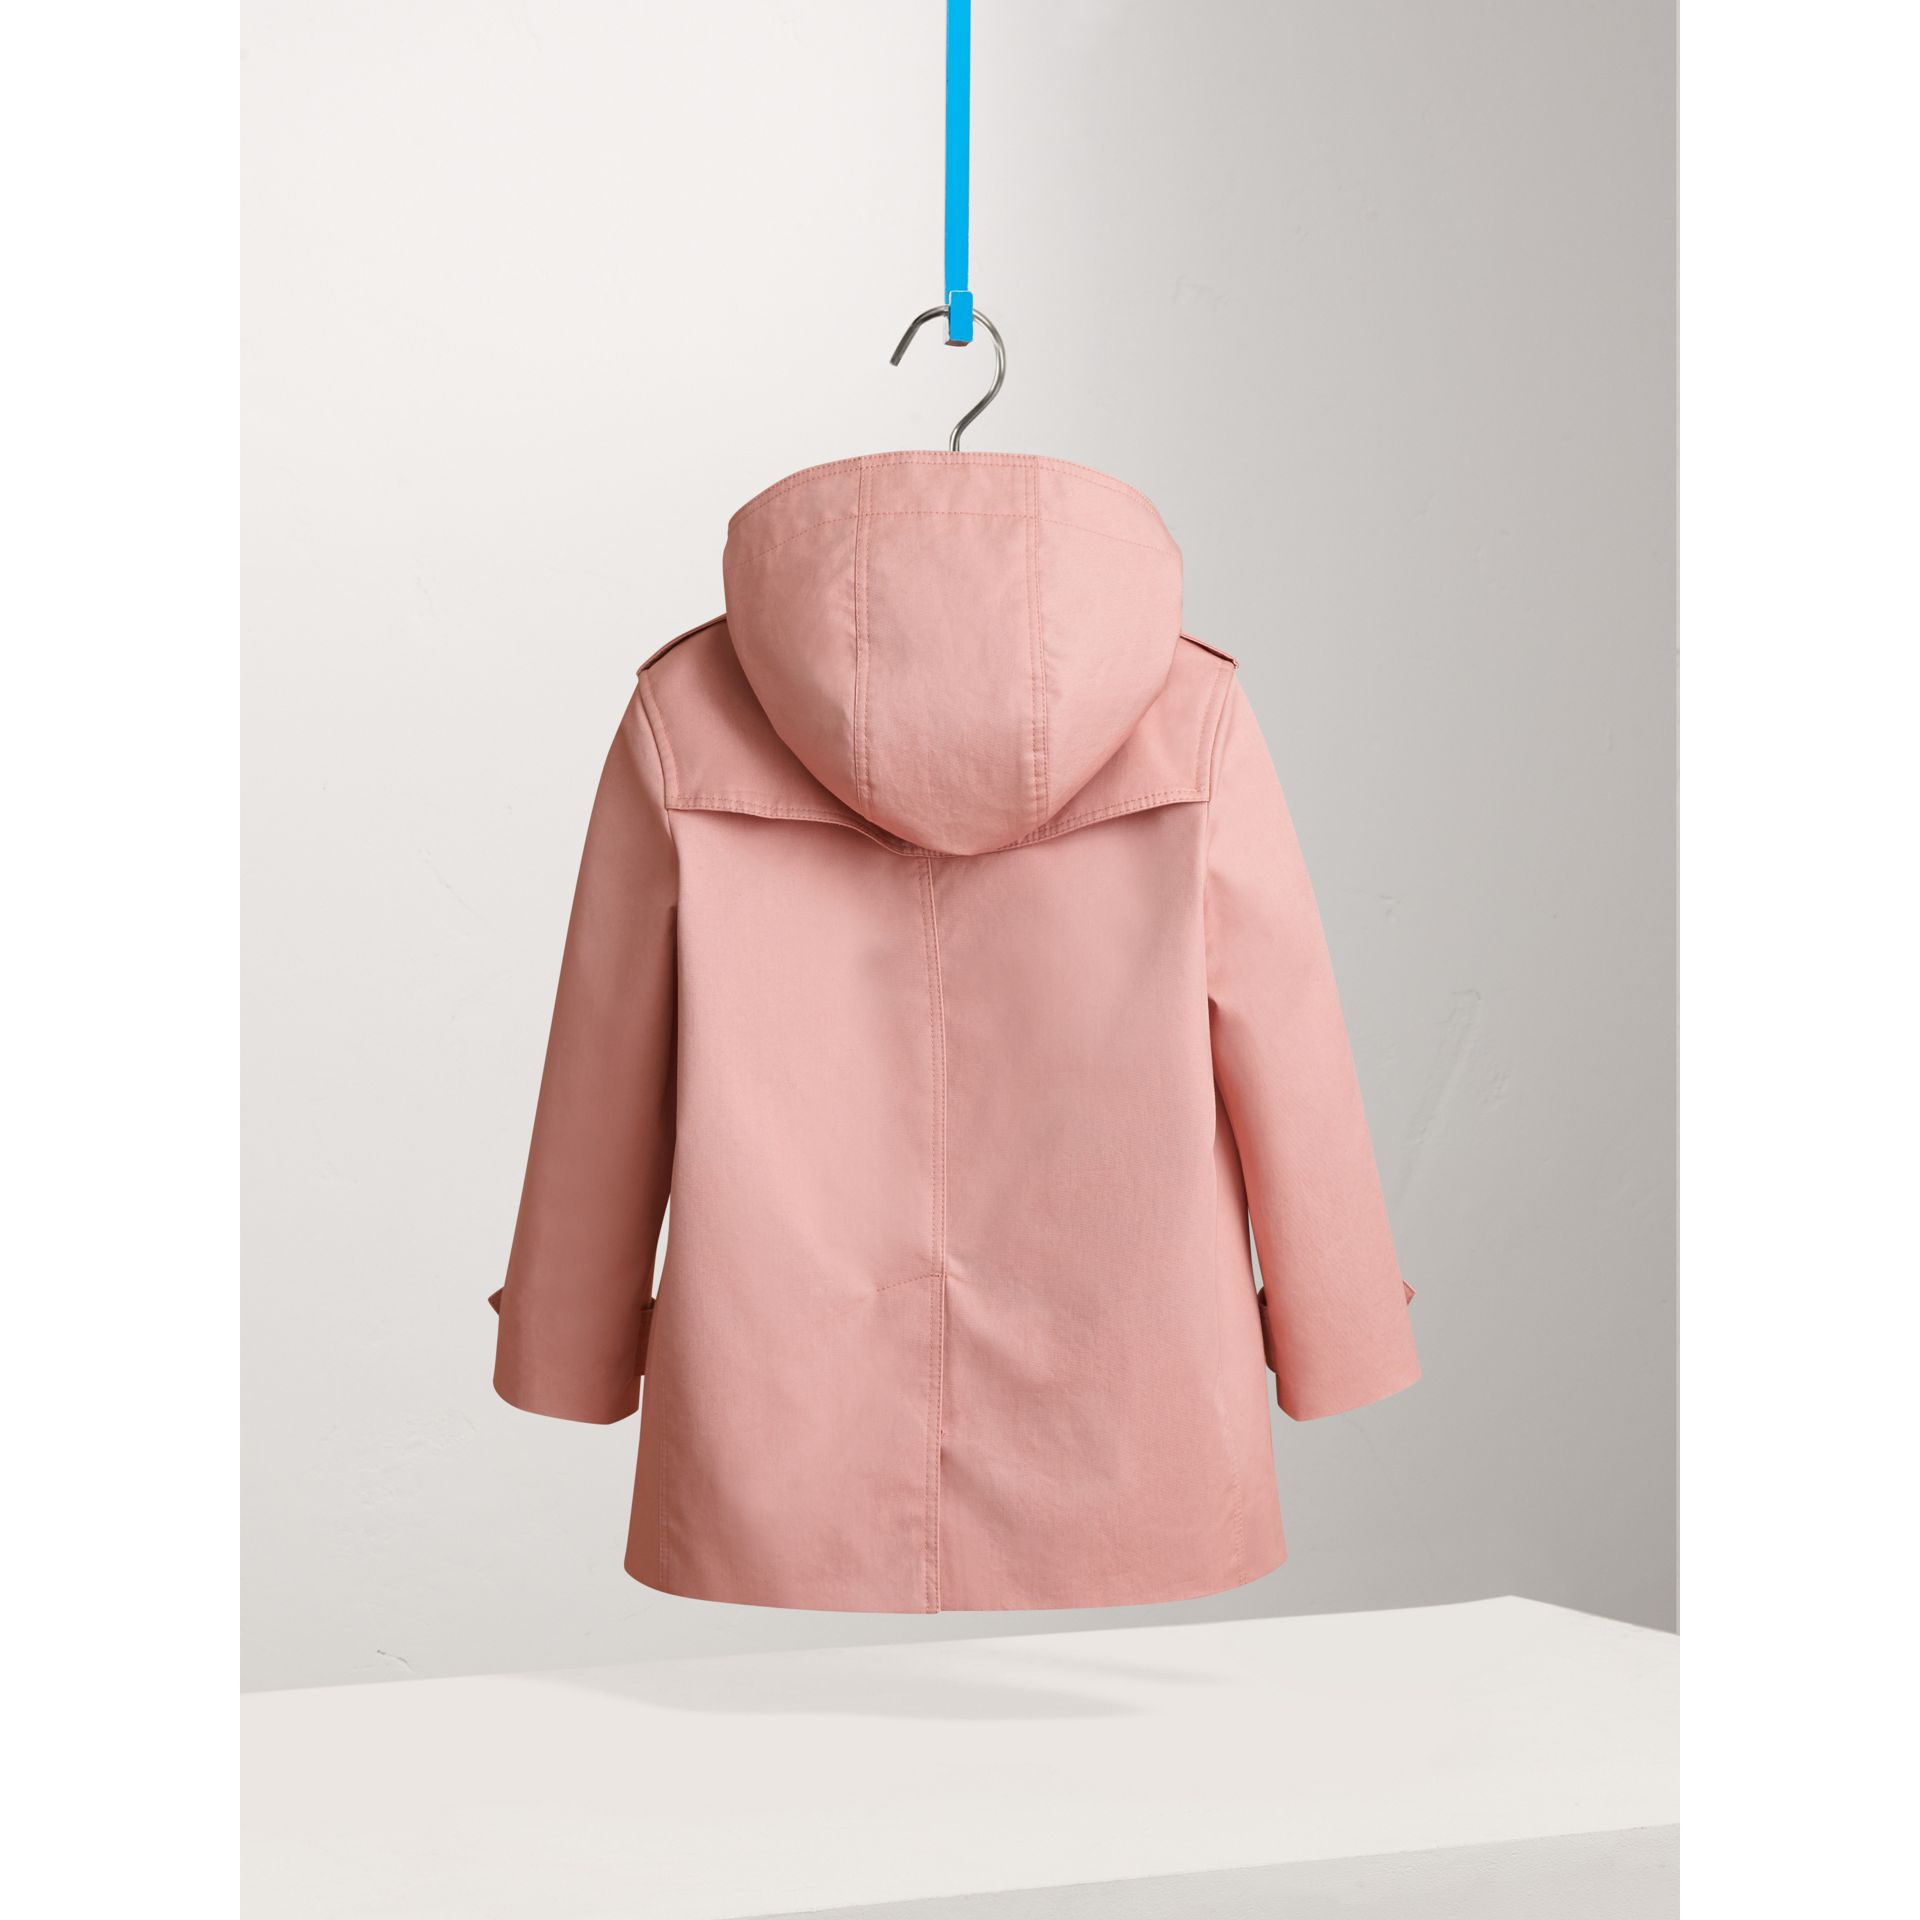 Trench-coat en coton à capuche amovible (Rose Pâle) - Fille | Burberry - photo de la galerie 3